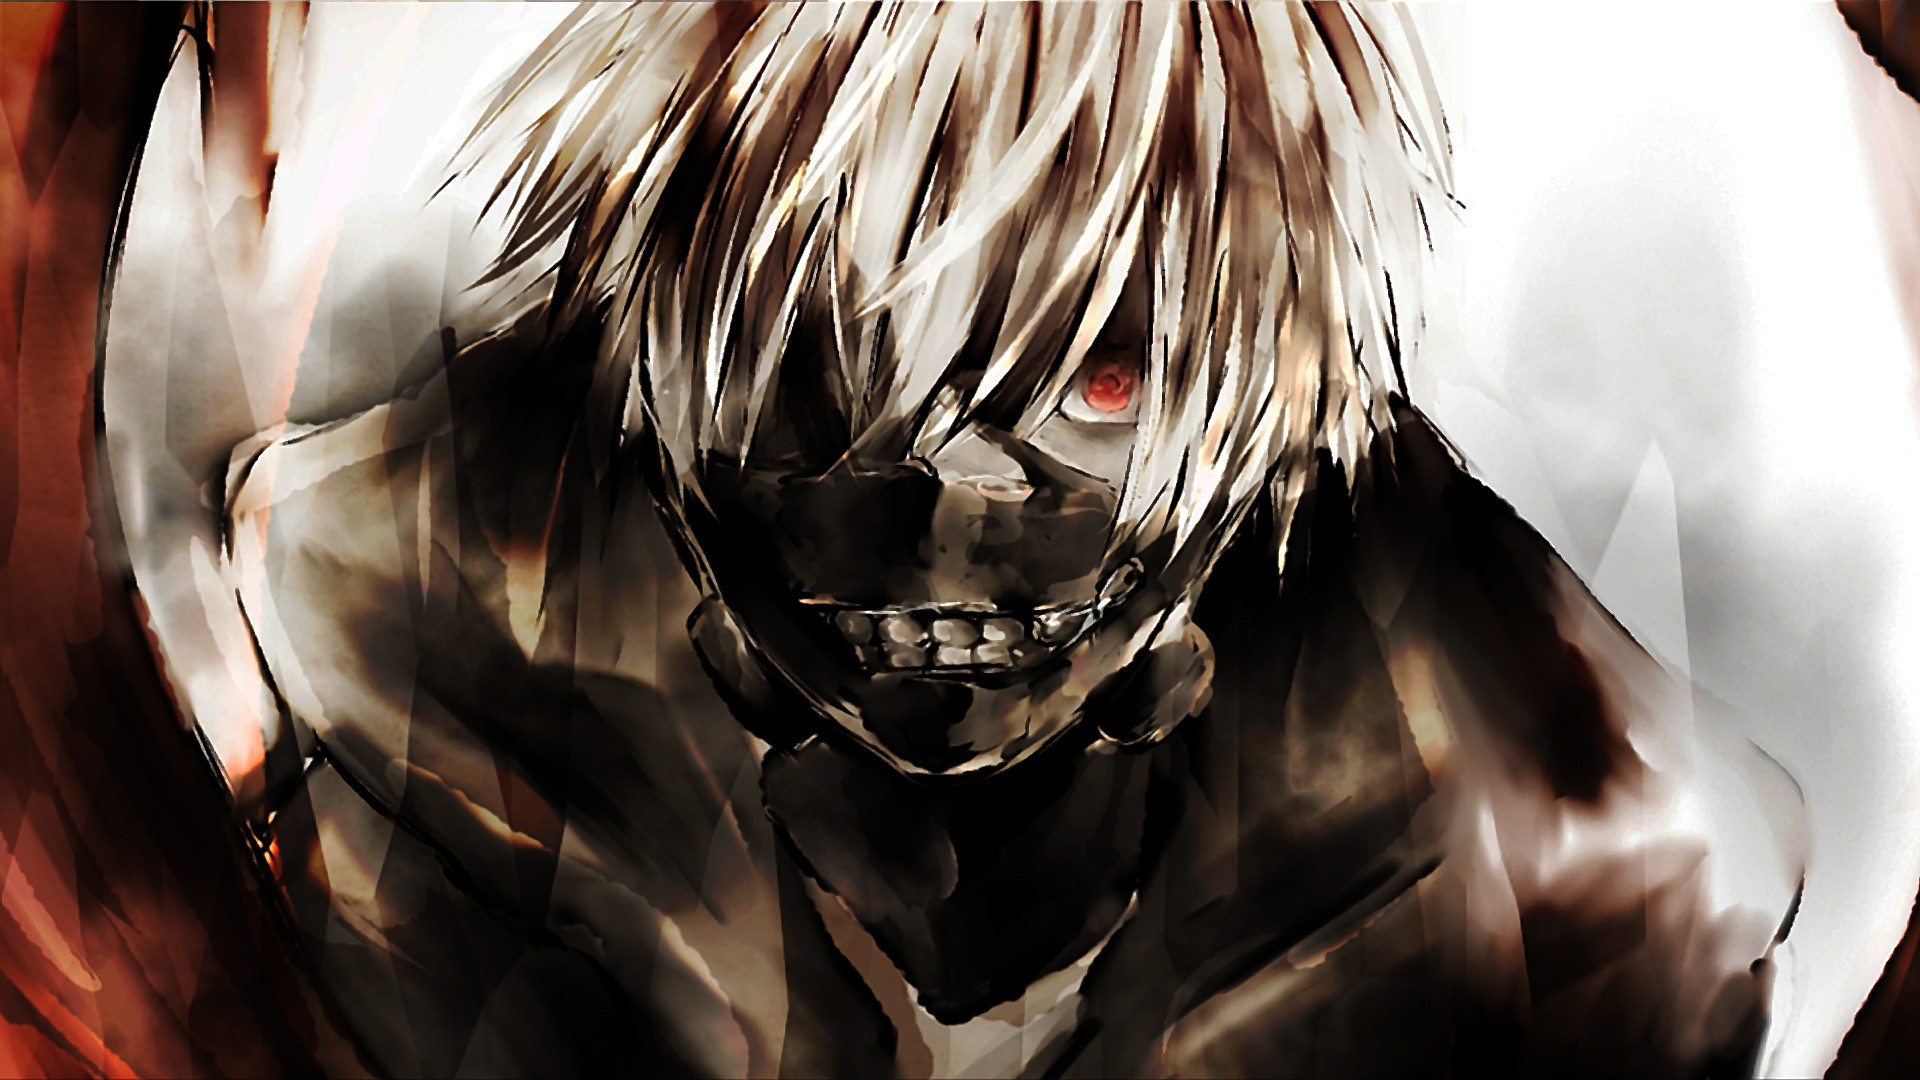 Tokyo Ghoul Hd Wallpaper Pictures to share, Tokyo Ghoul Hd Wallpaper Pix